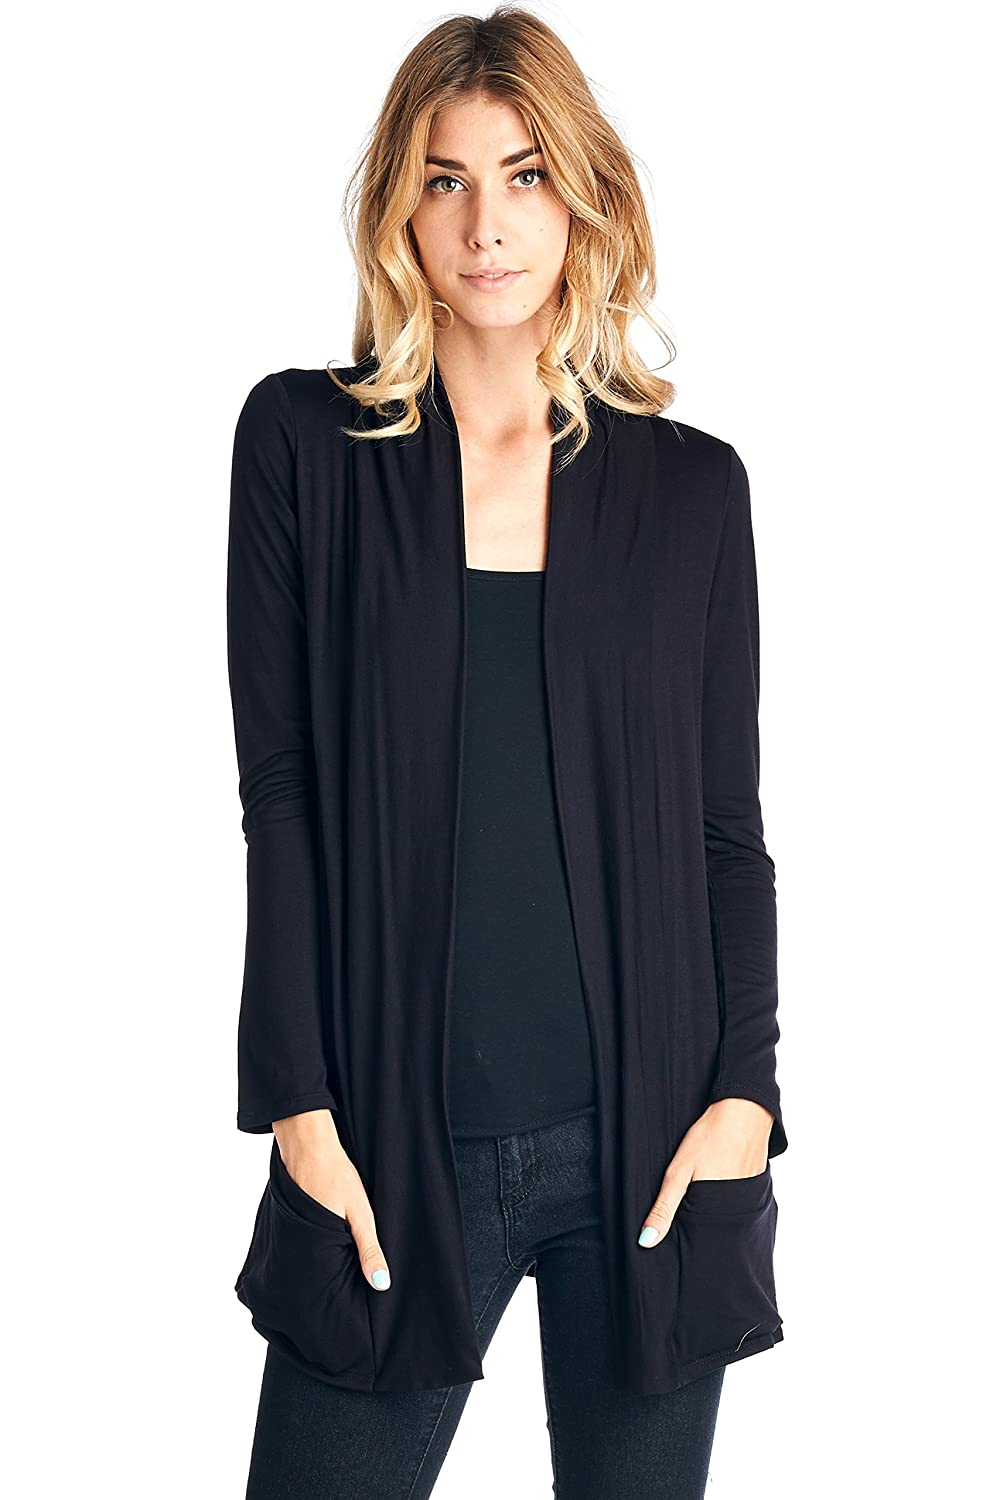 0d551e752f4 hot sale 2017 12 Ami Basic Long Sleeve Open Front Pocket Cardigan - Made in  USA